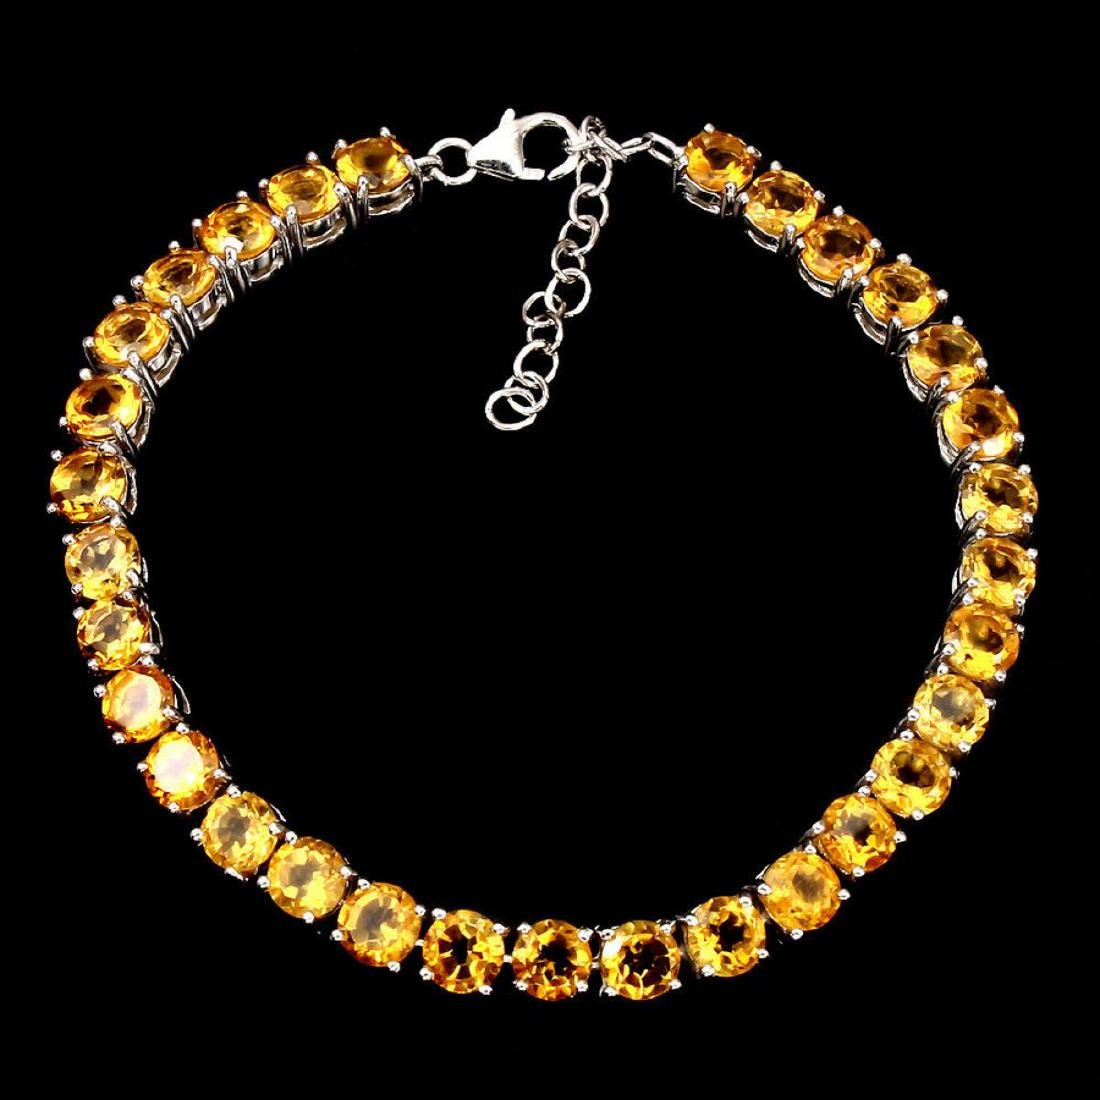 Natural Top Rich Yellow Citrine 70.70 Cts Bracelet - 2